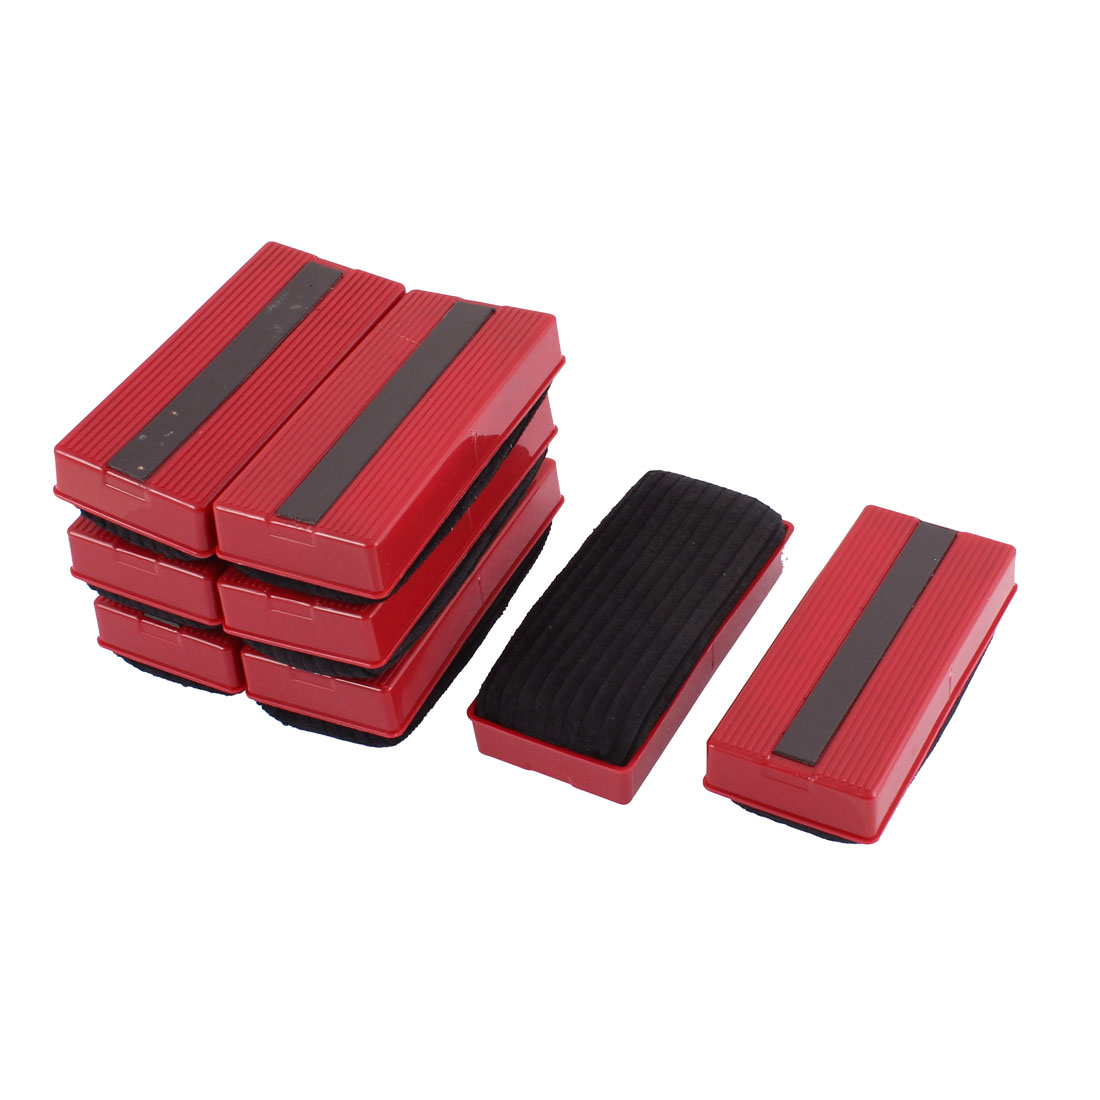 School Teaching Plastic Shell Magnetic Blackboard Eraser Red Black 8 Pcs